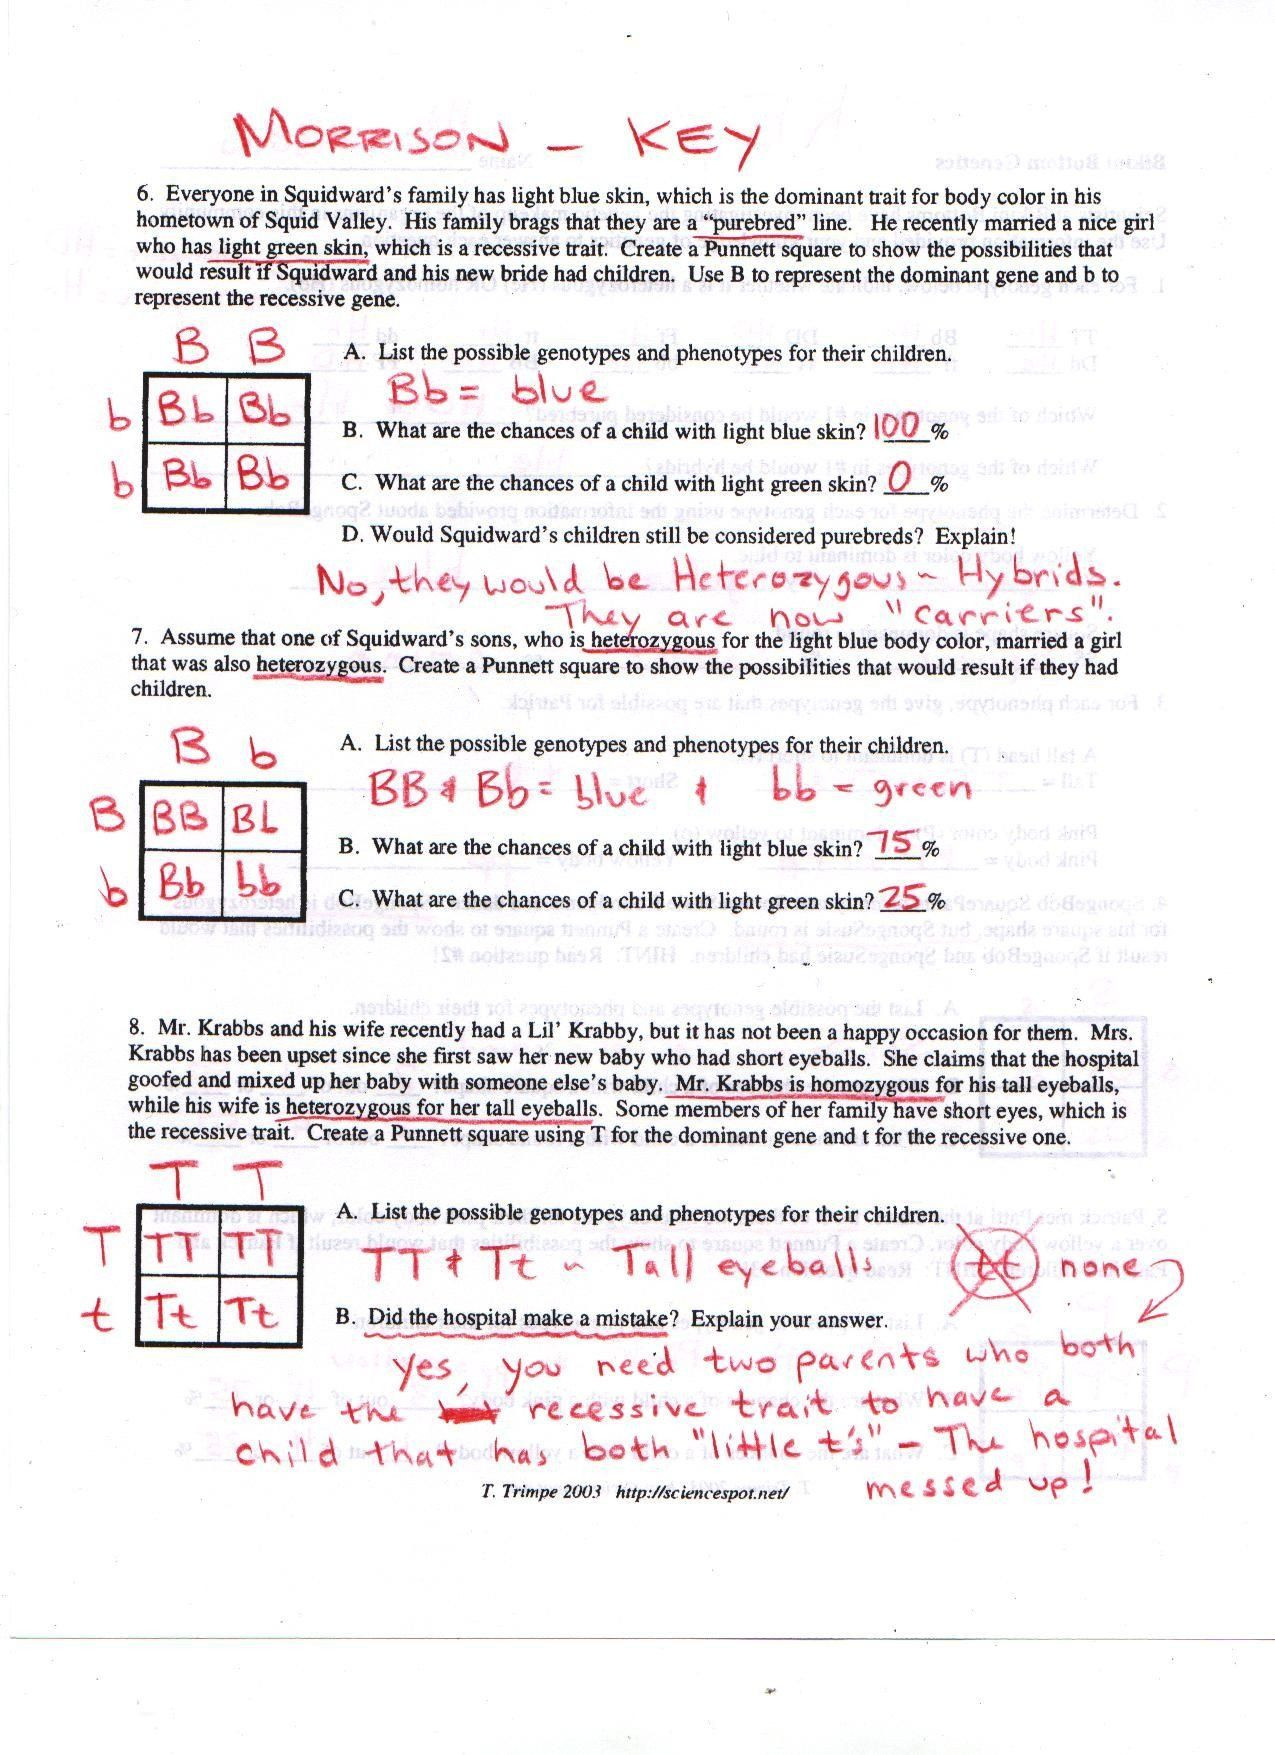 Genotypes and Phenotypes Worksheet Answers Pin On Printable Blank Worksheet Template